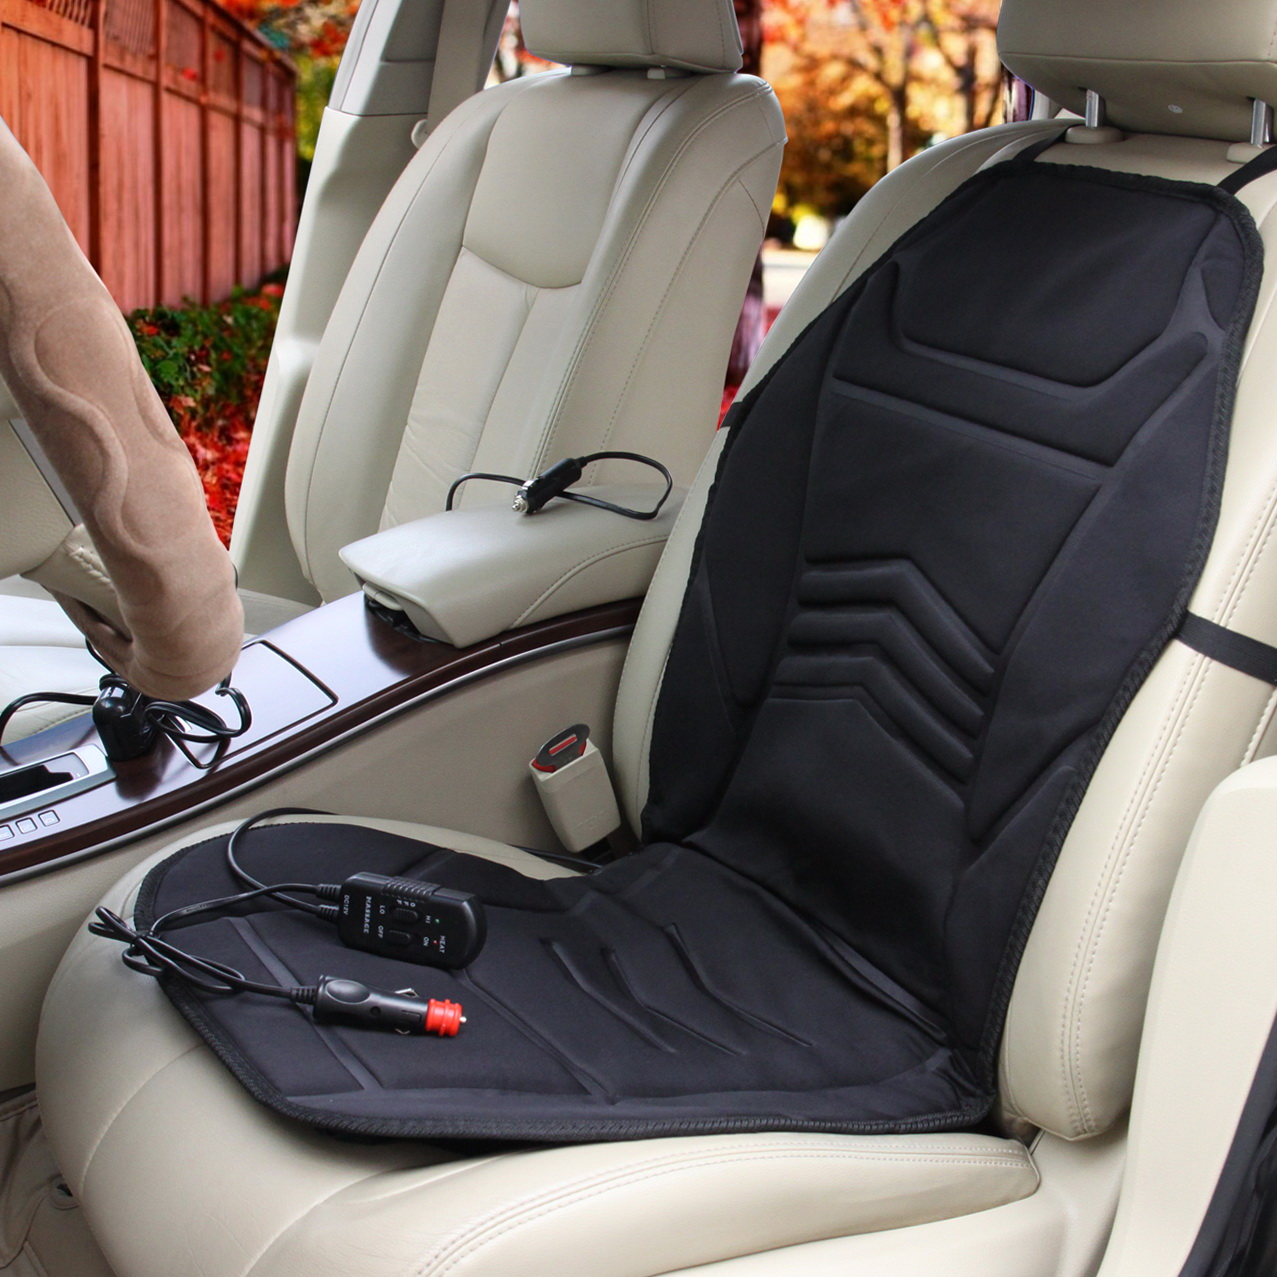 Heated Car Seat Cushion Uk